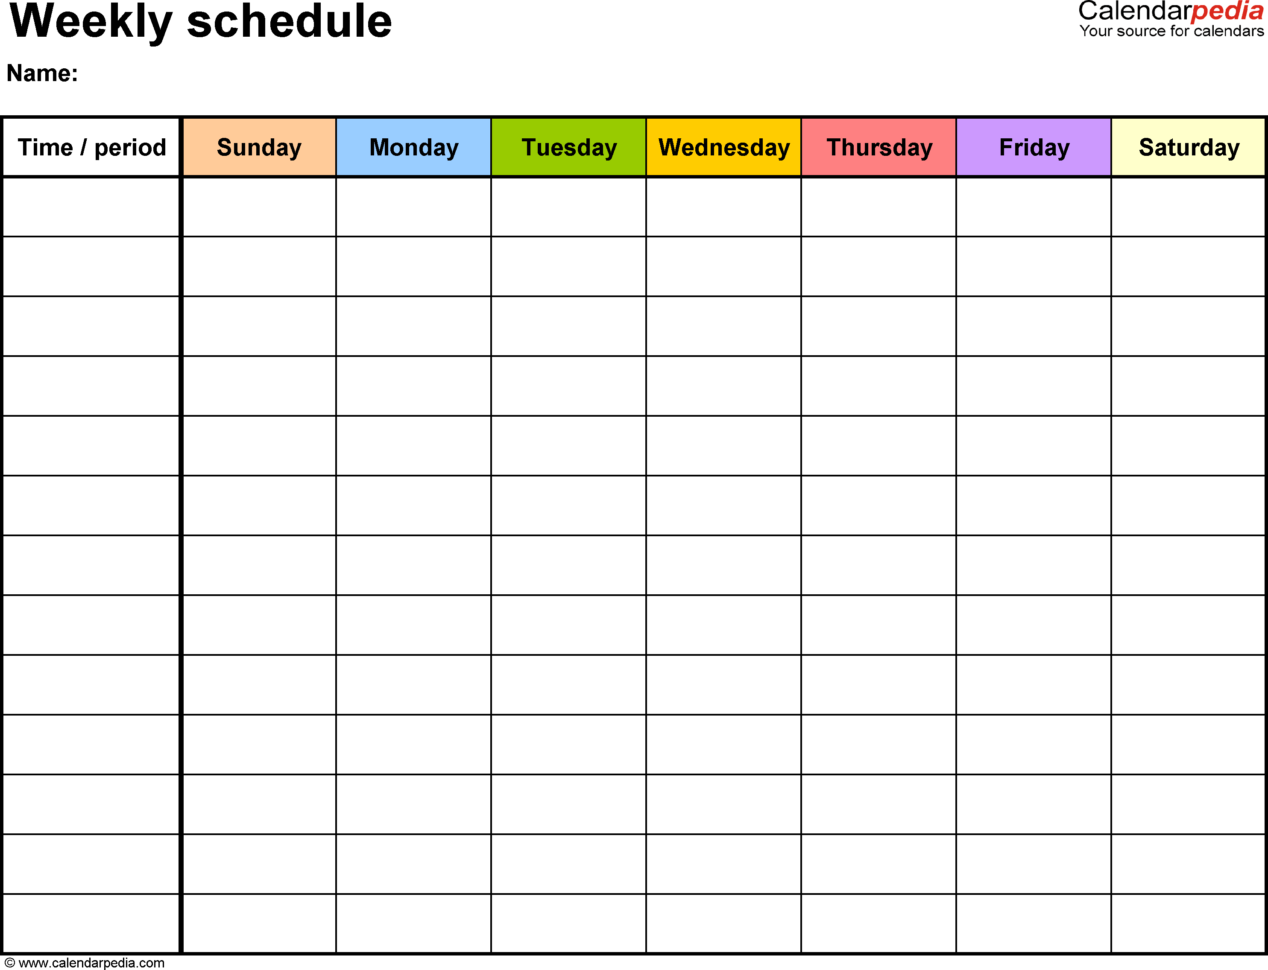 Free Weekly Schedule Templates For Excel   18 Templates And Employee Work Schedule Spreadsheet